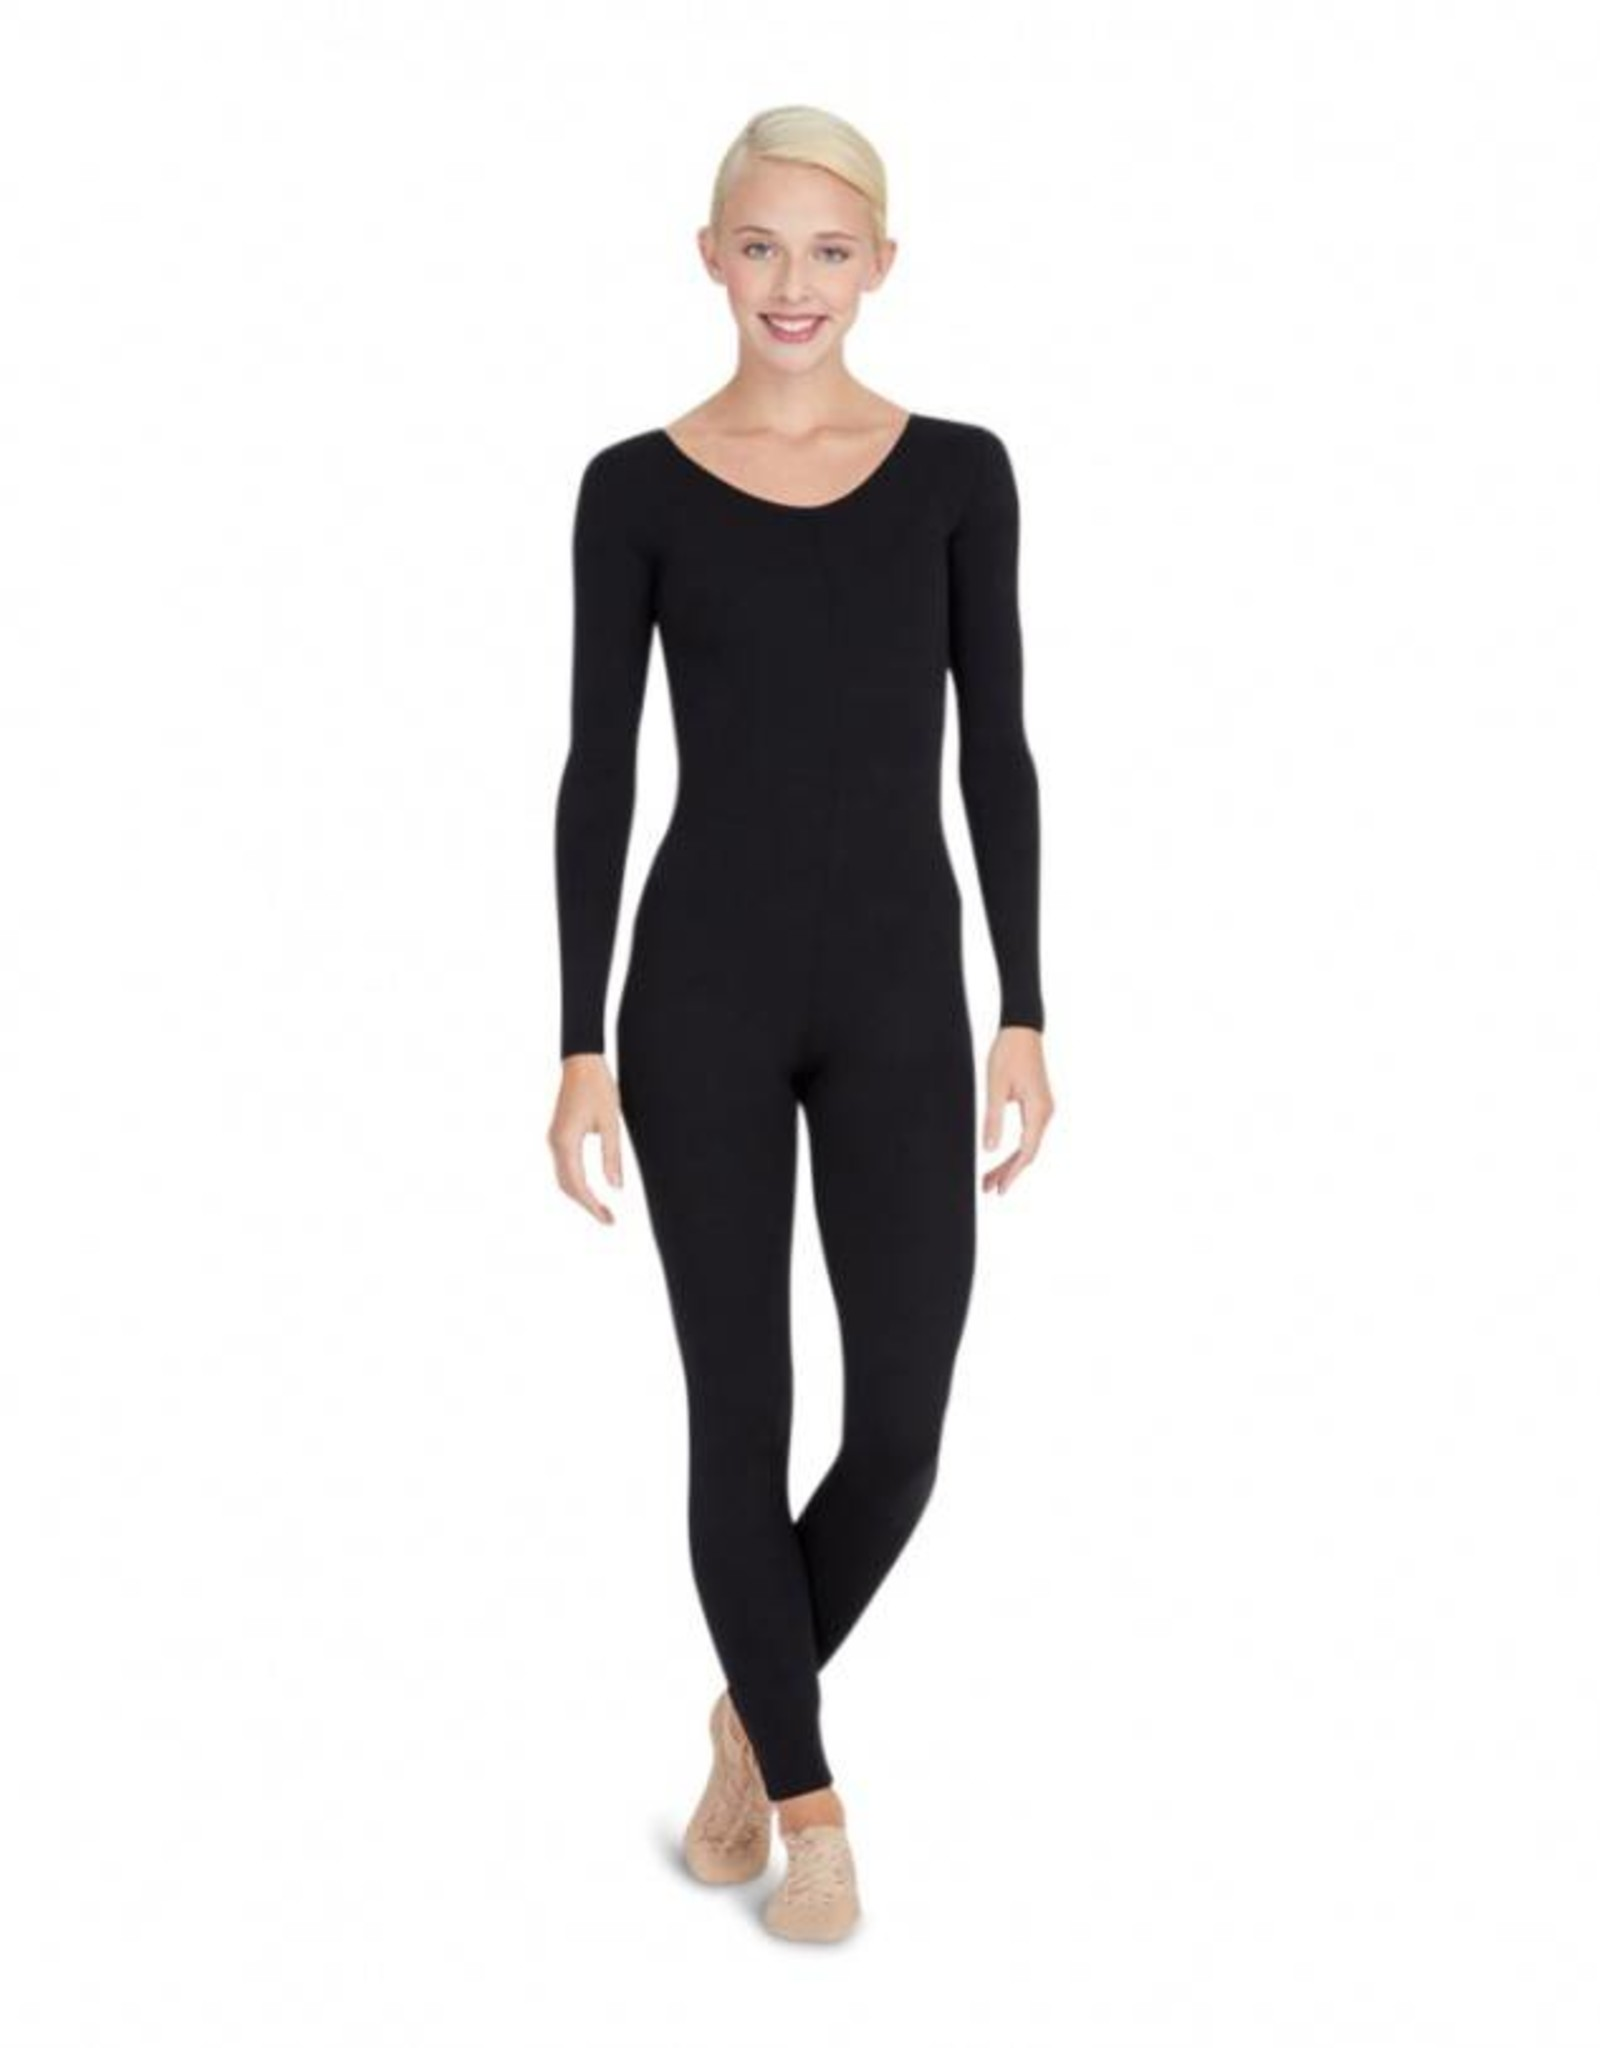 Capezio TB114 Adult Long Sleeve Unitard